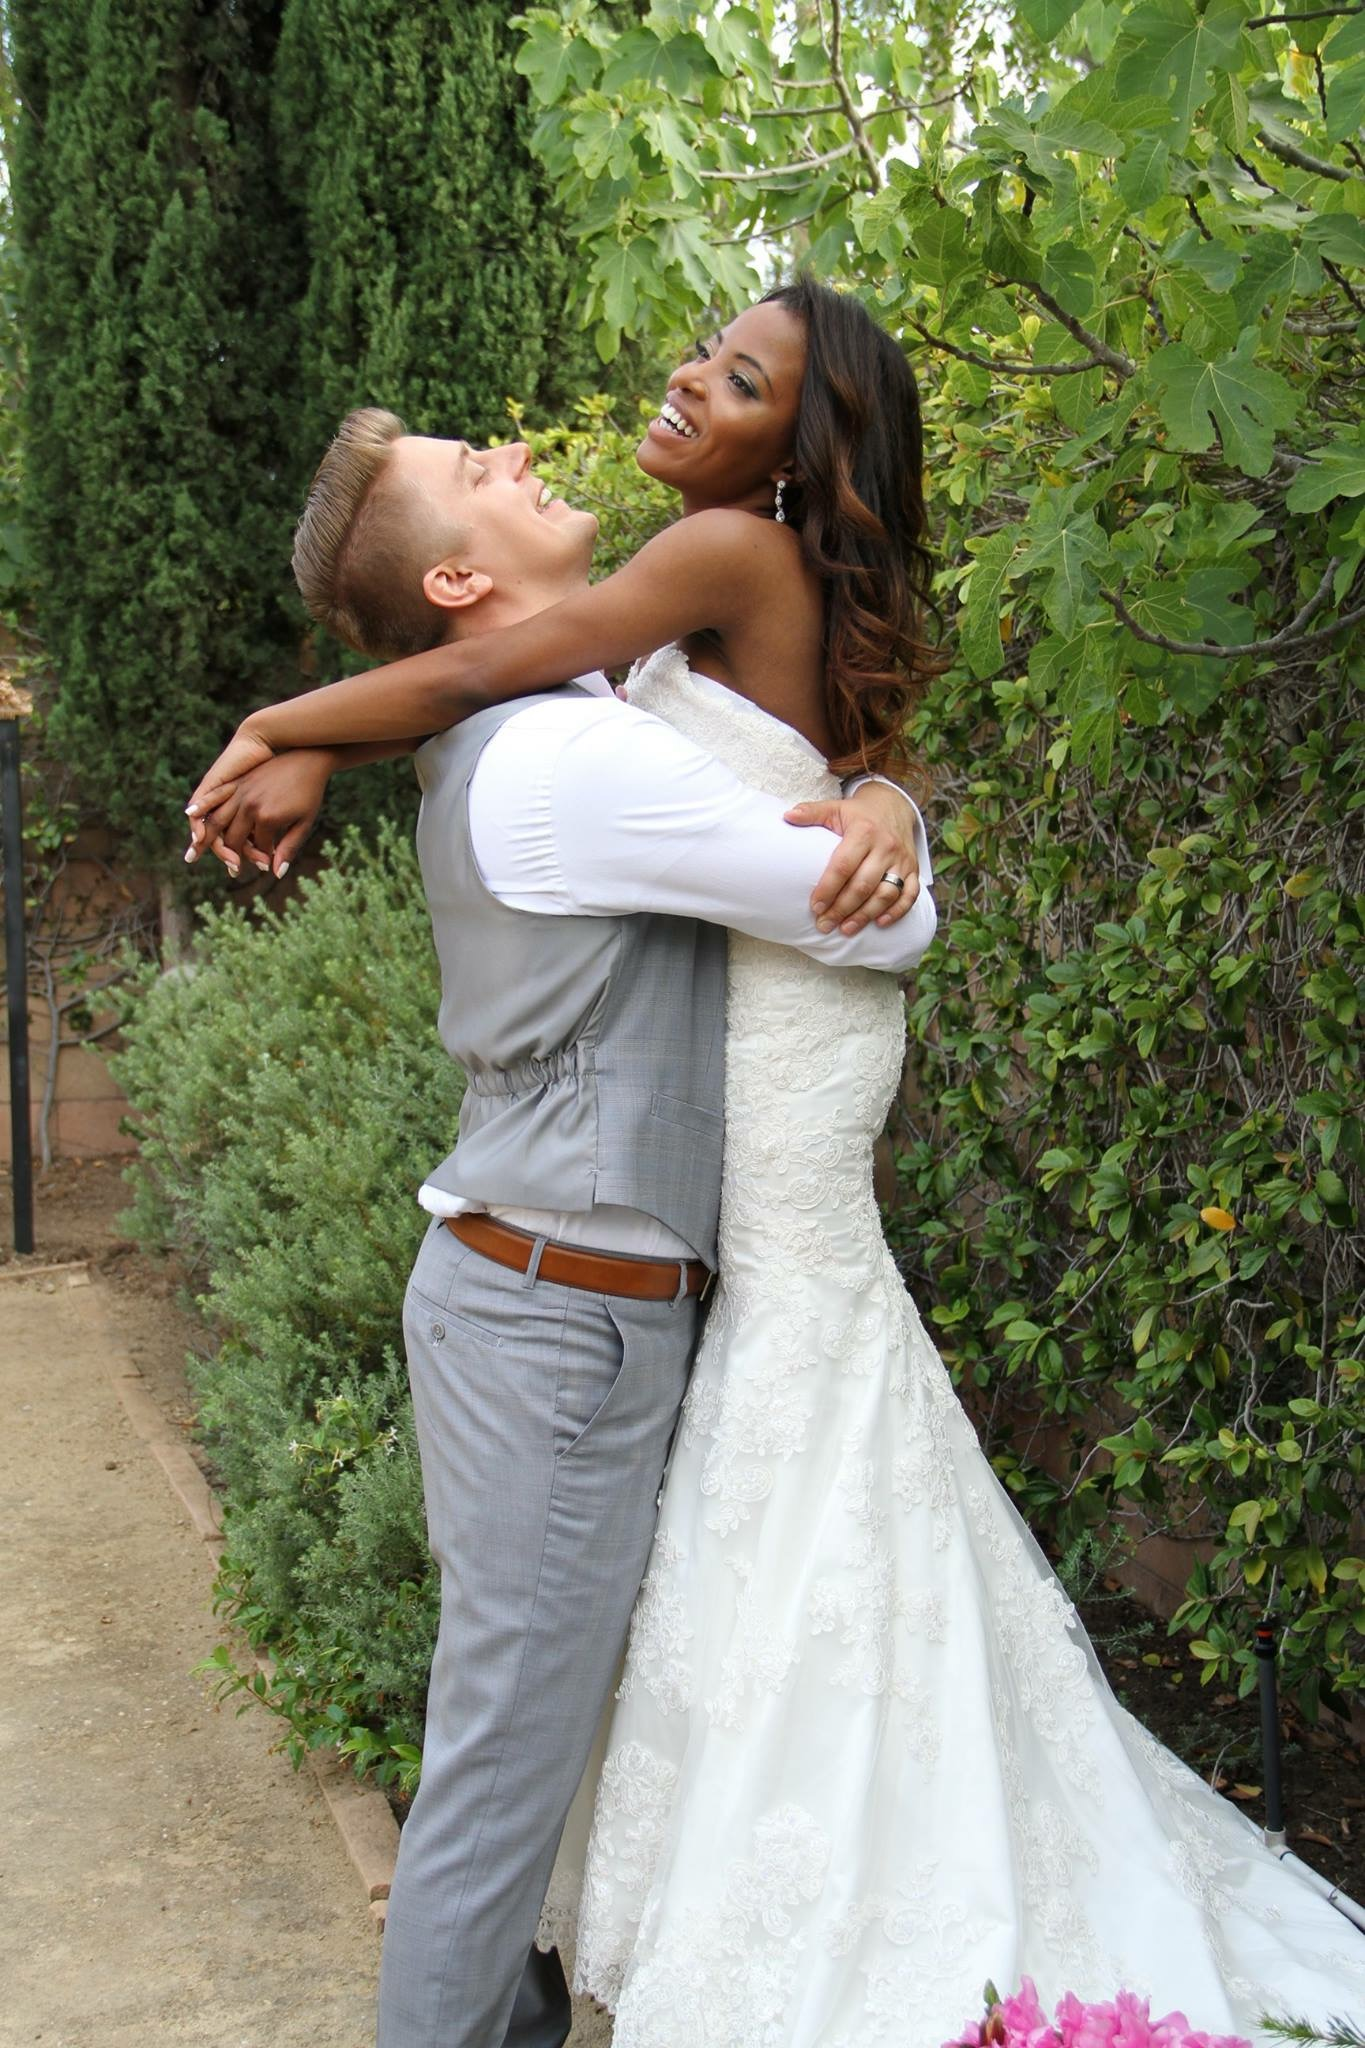 A photo from our wedding in Simi Valley, CA.